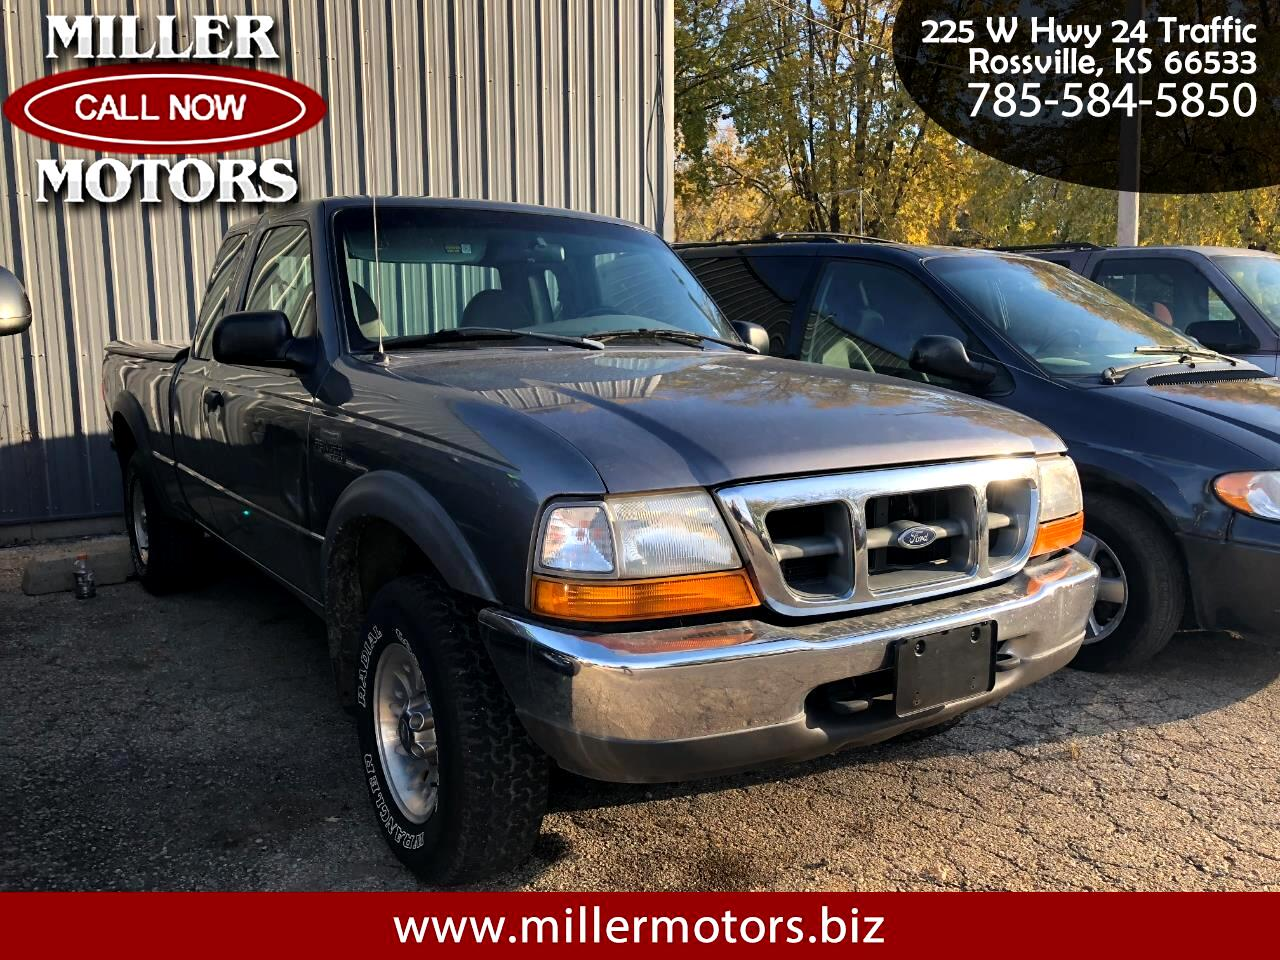 1999 Ford Ranger Supercab 126